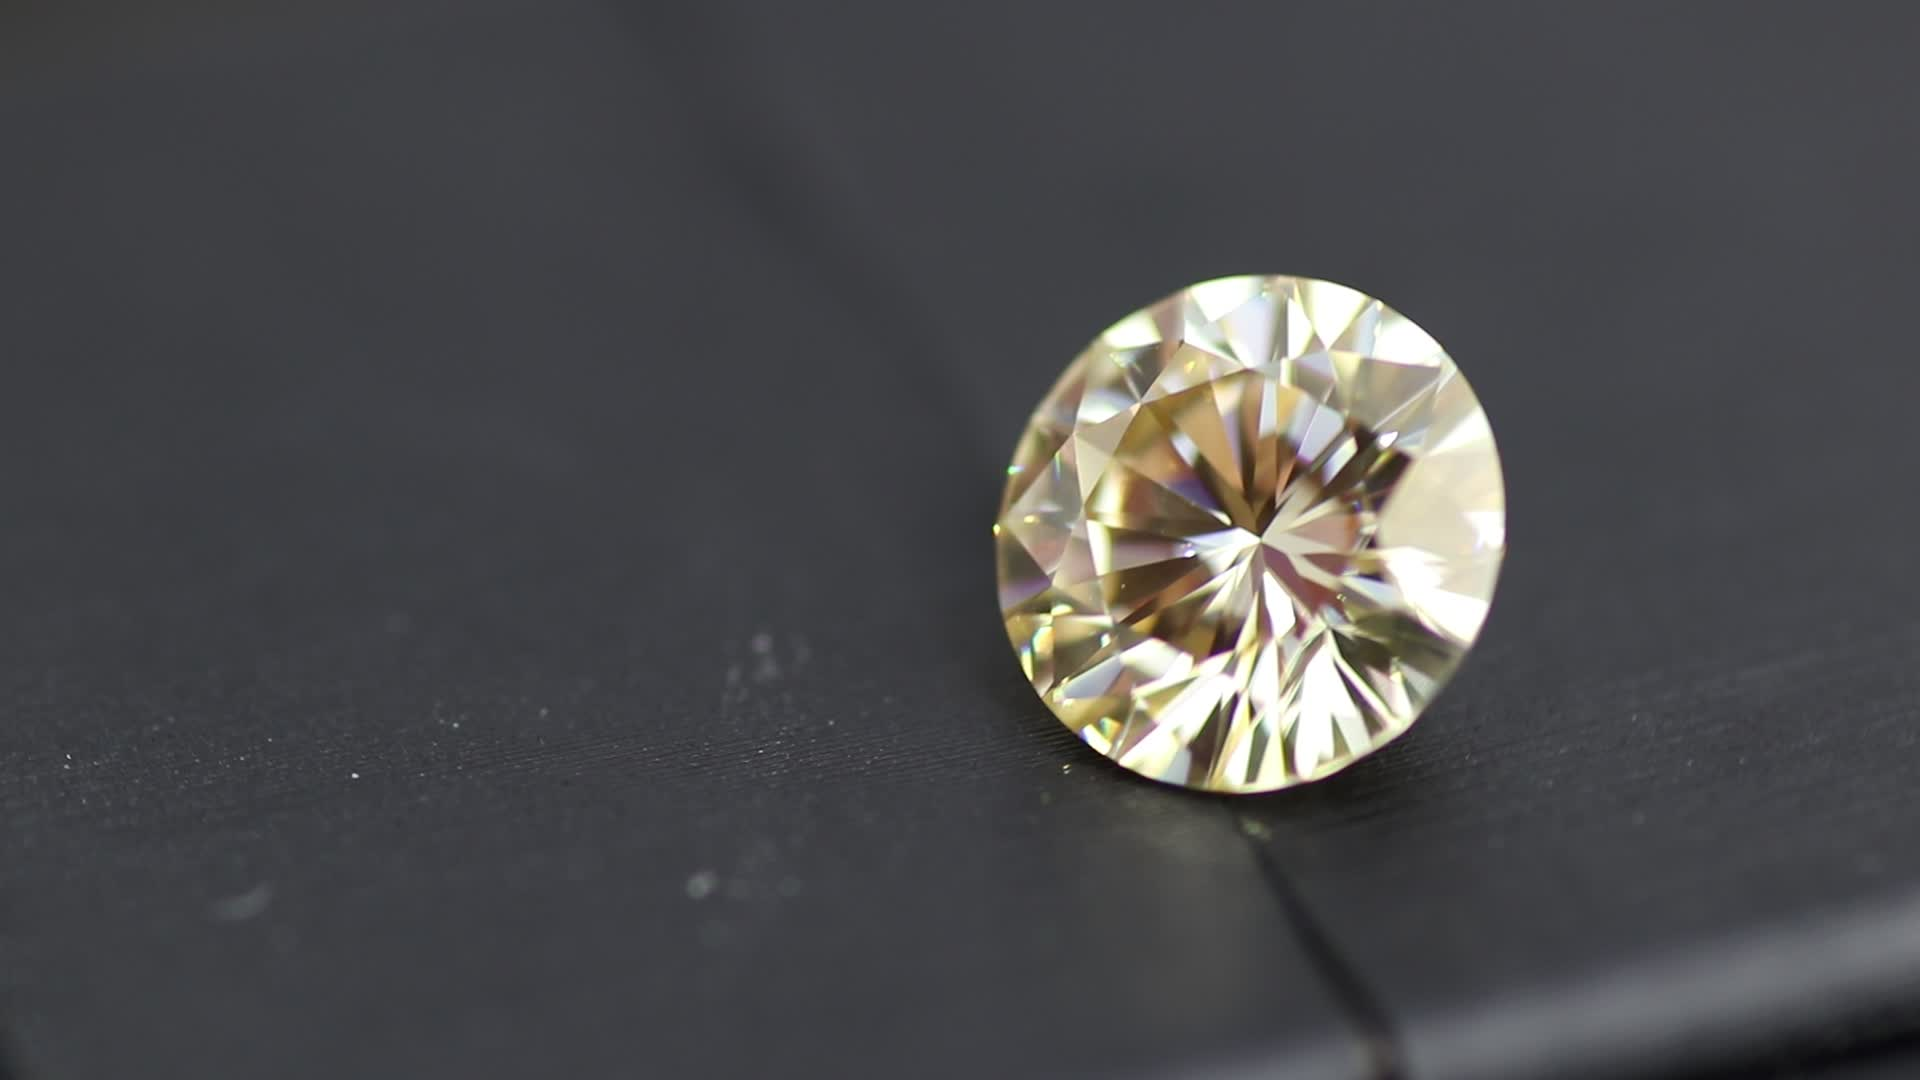 Never change Round brilliant cut light yellow color moissanite for moissanite jewelry making